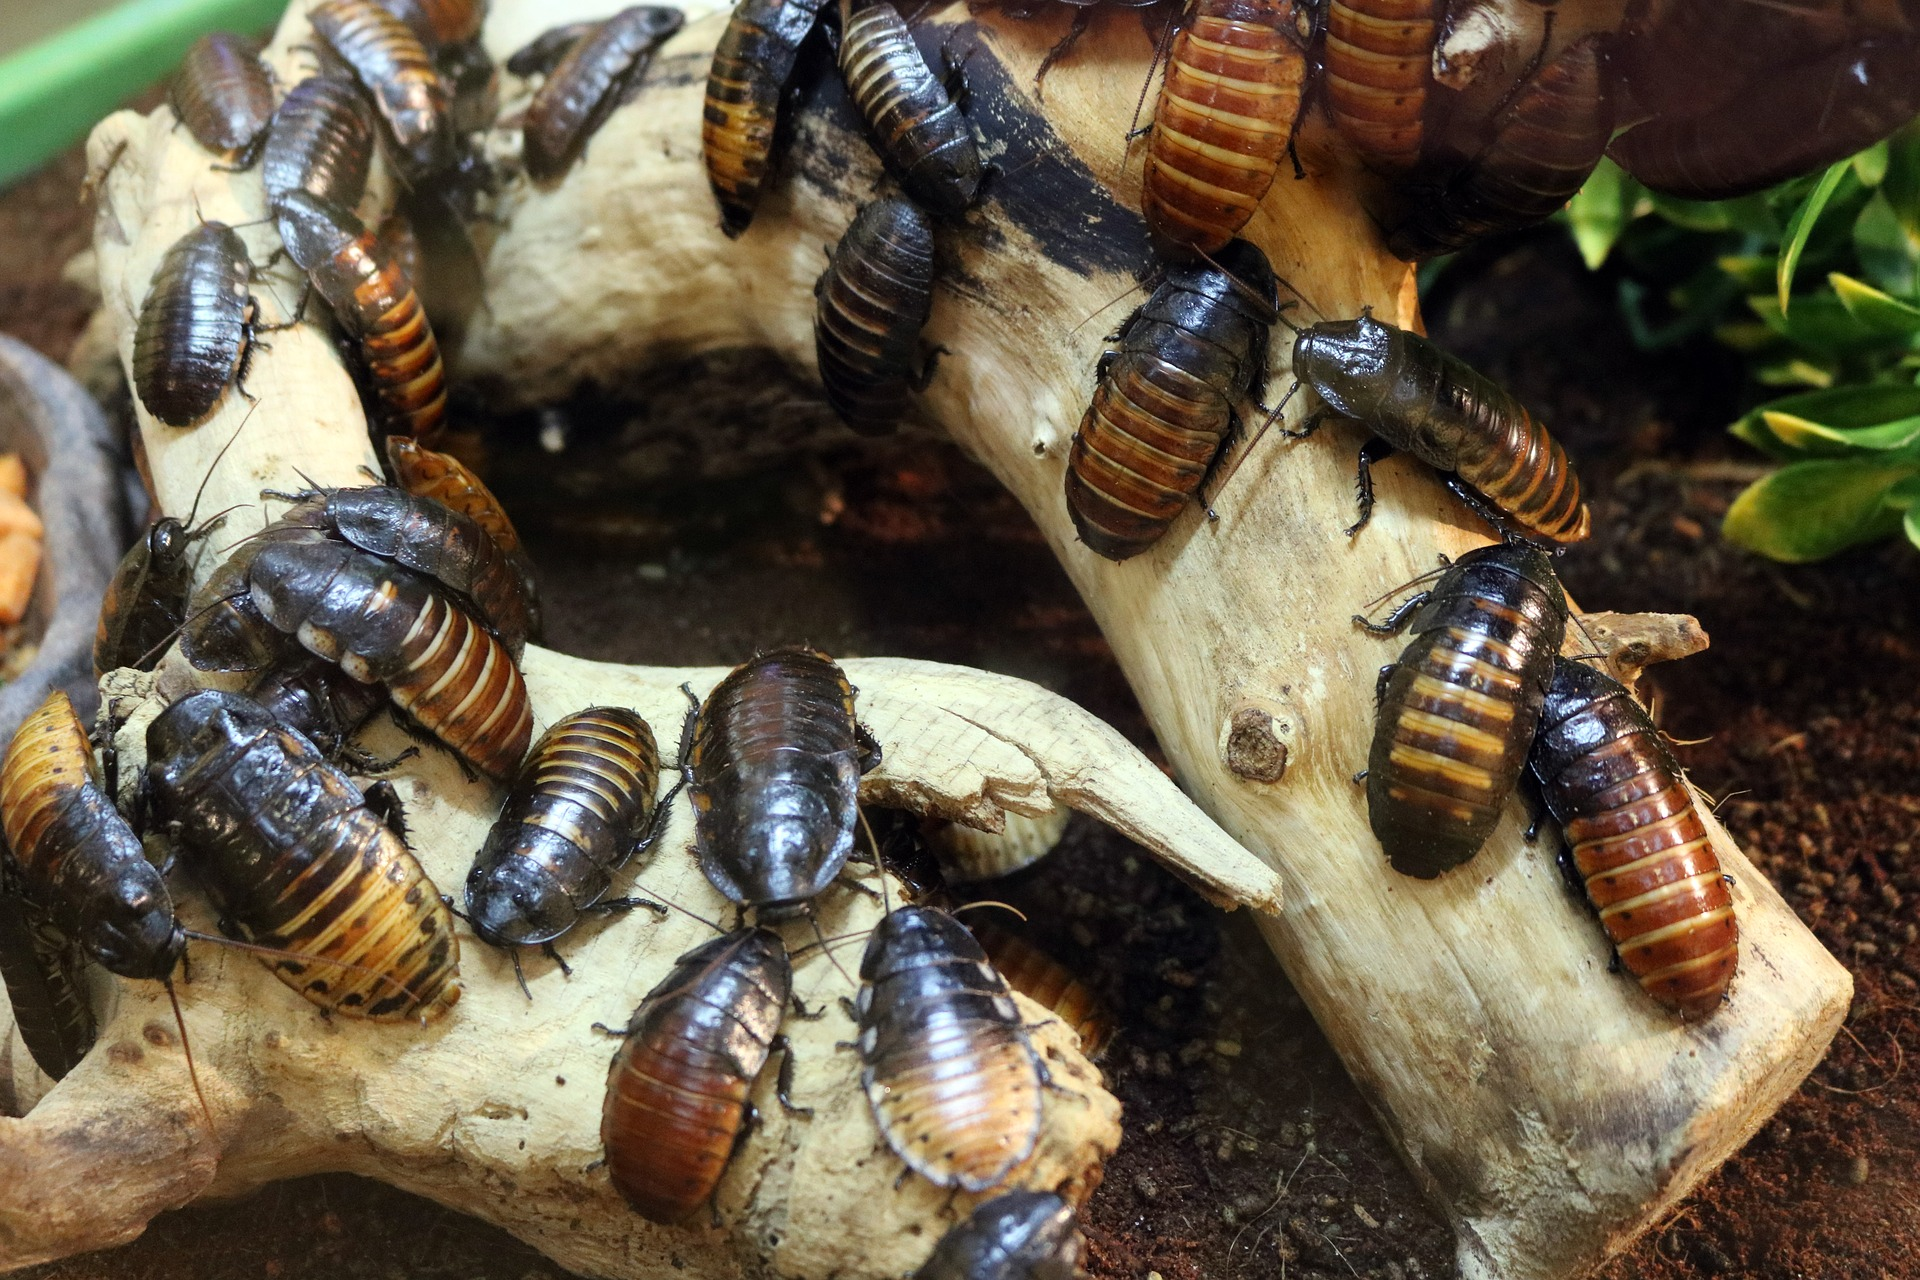 Natural ways on how to get rid of roaches in your home.